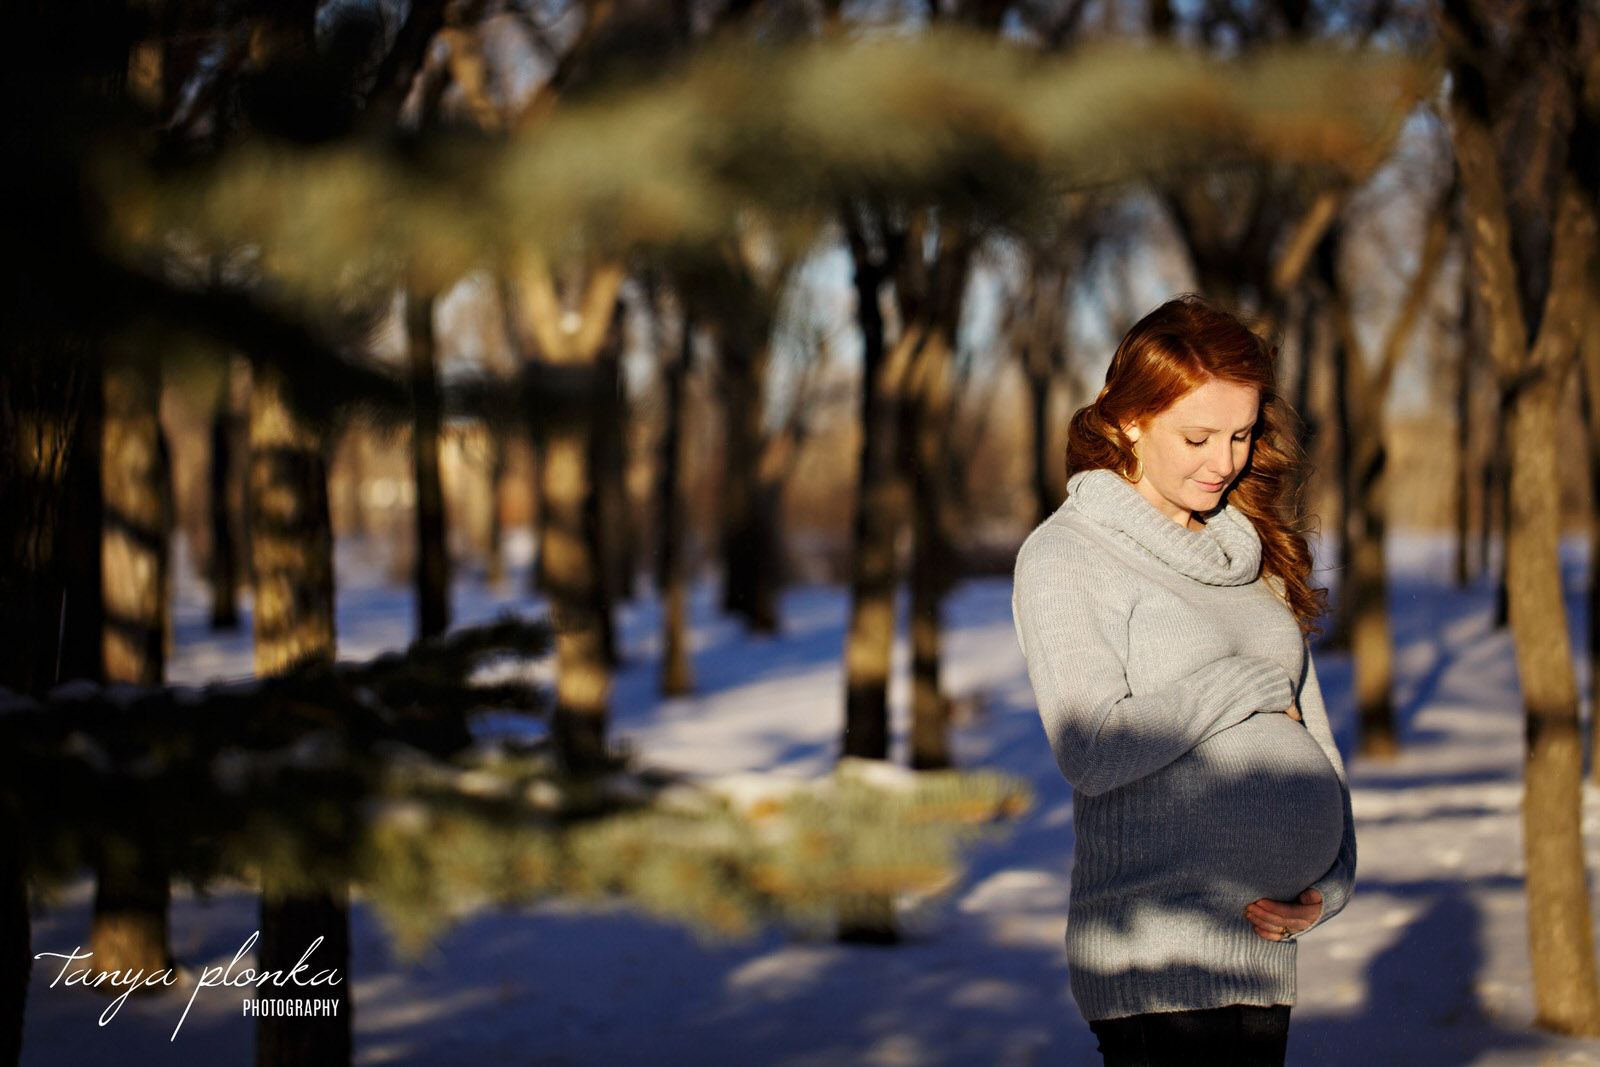 pregnant woman looks down at belly in snowy forest